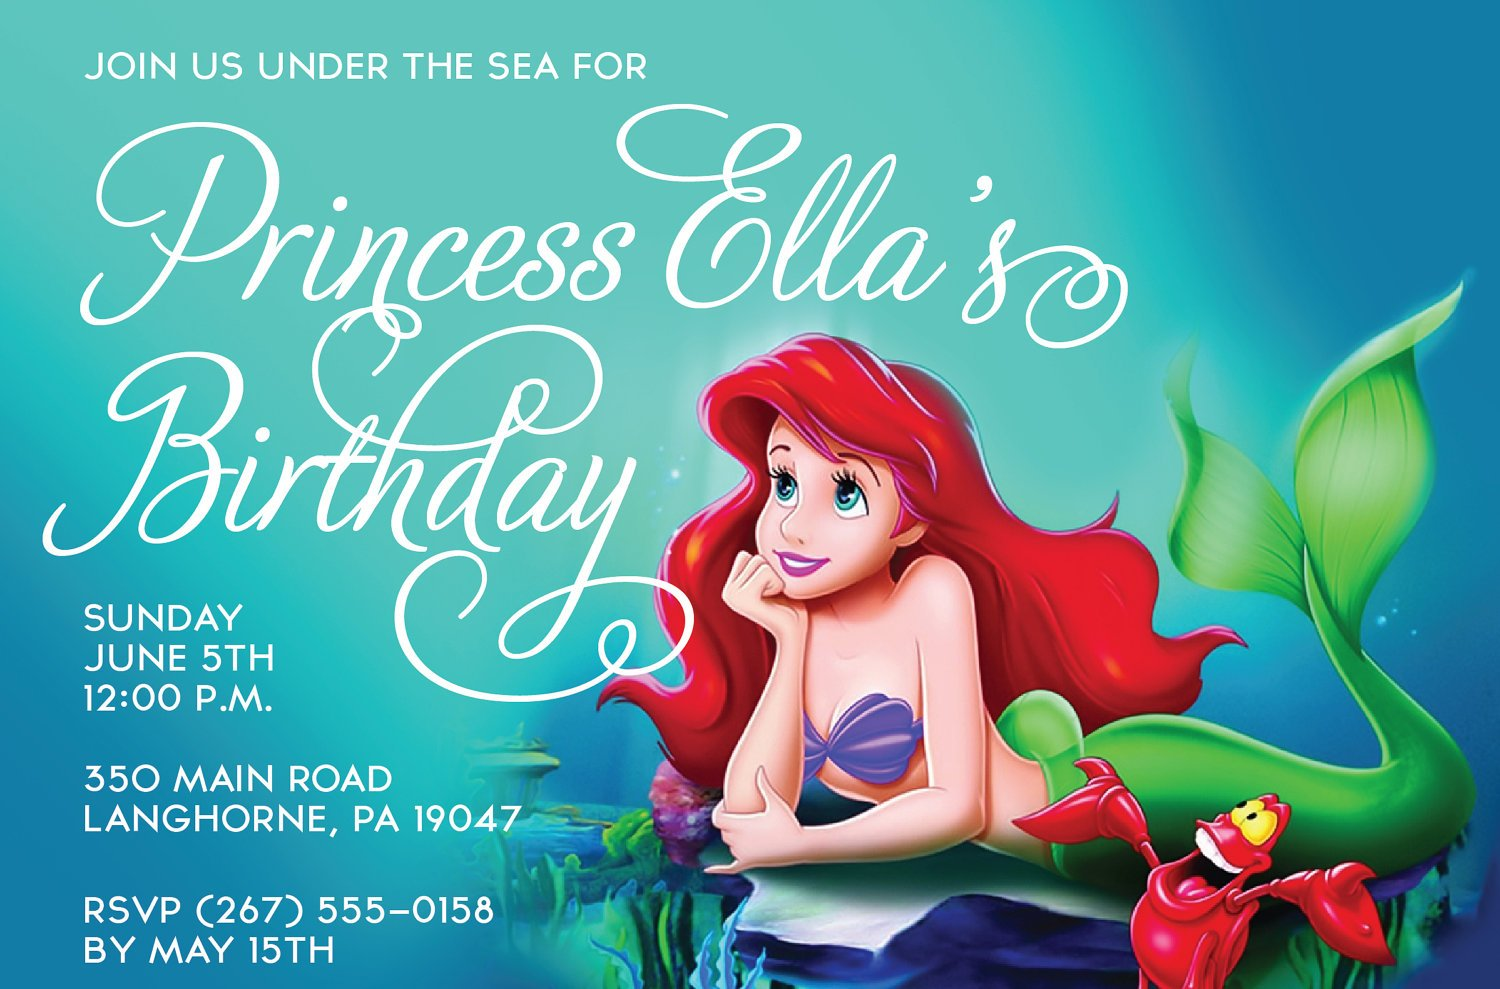 Free Printable Birthday Invitations Ariel Mermaid Bagvania FREE - Little mermaid birthday invitation template